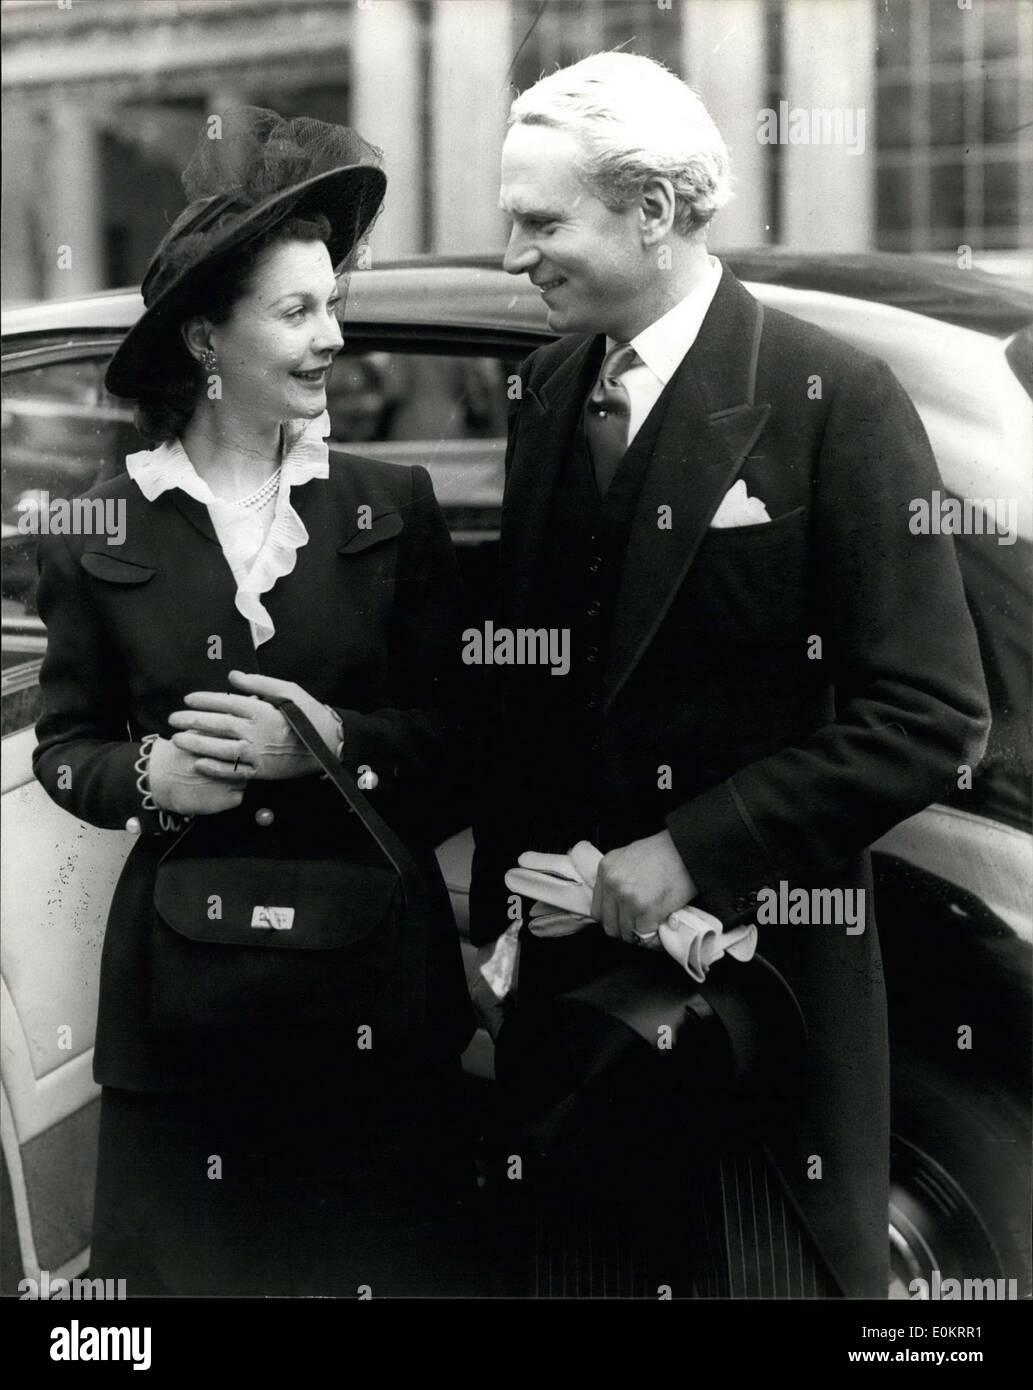 Jul. 08, 1947 - ''Hamlet'' receives his knighthood from the king, Sir Laurence Olivier at the Palace; Laurence Olivier the famous actor who has had his hair specially died for the part of ''Hamlet'' in the forthcoming film version of the play, visited the Palace this morning with his equally famous wife, Vivien Leigh, to be knighted by the king. Photo Shows Sir Laurence and Lady Olivier, seen after the investiture at the palace this morning. - Stock Image